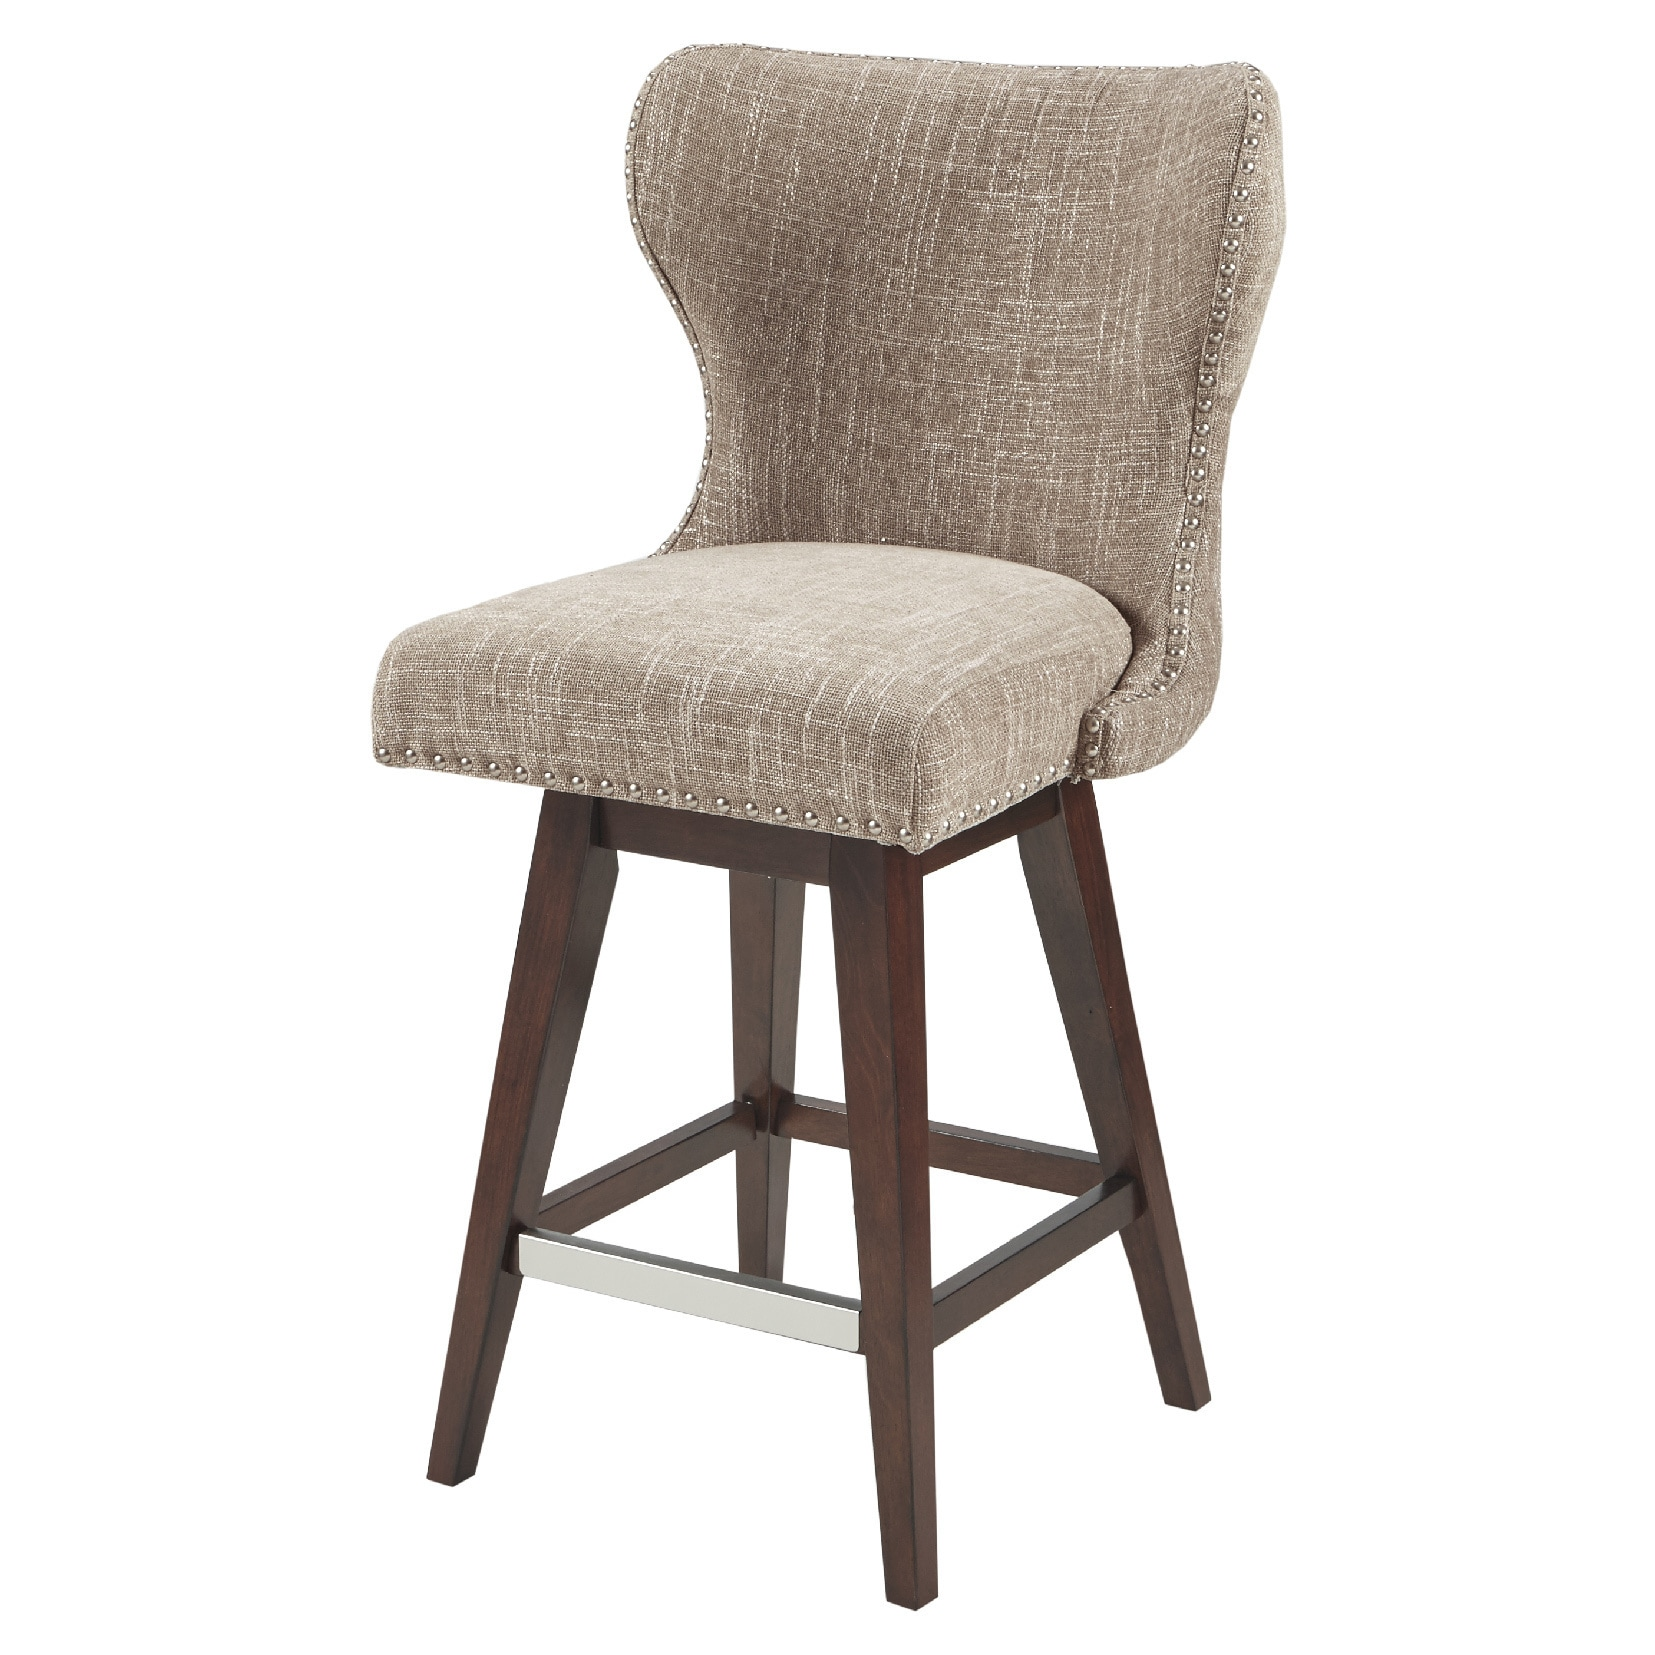 Madison Park Irvine Upholstered 27-inch Swivel Bar Stool